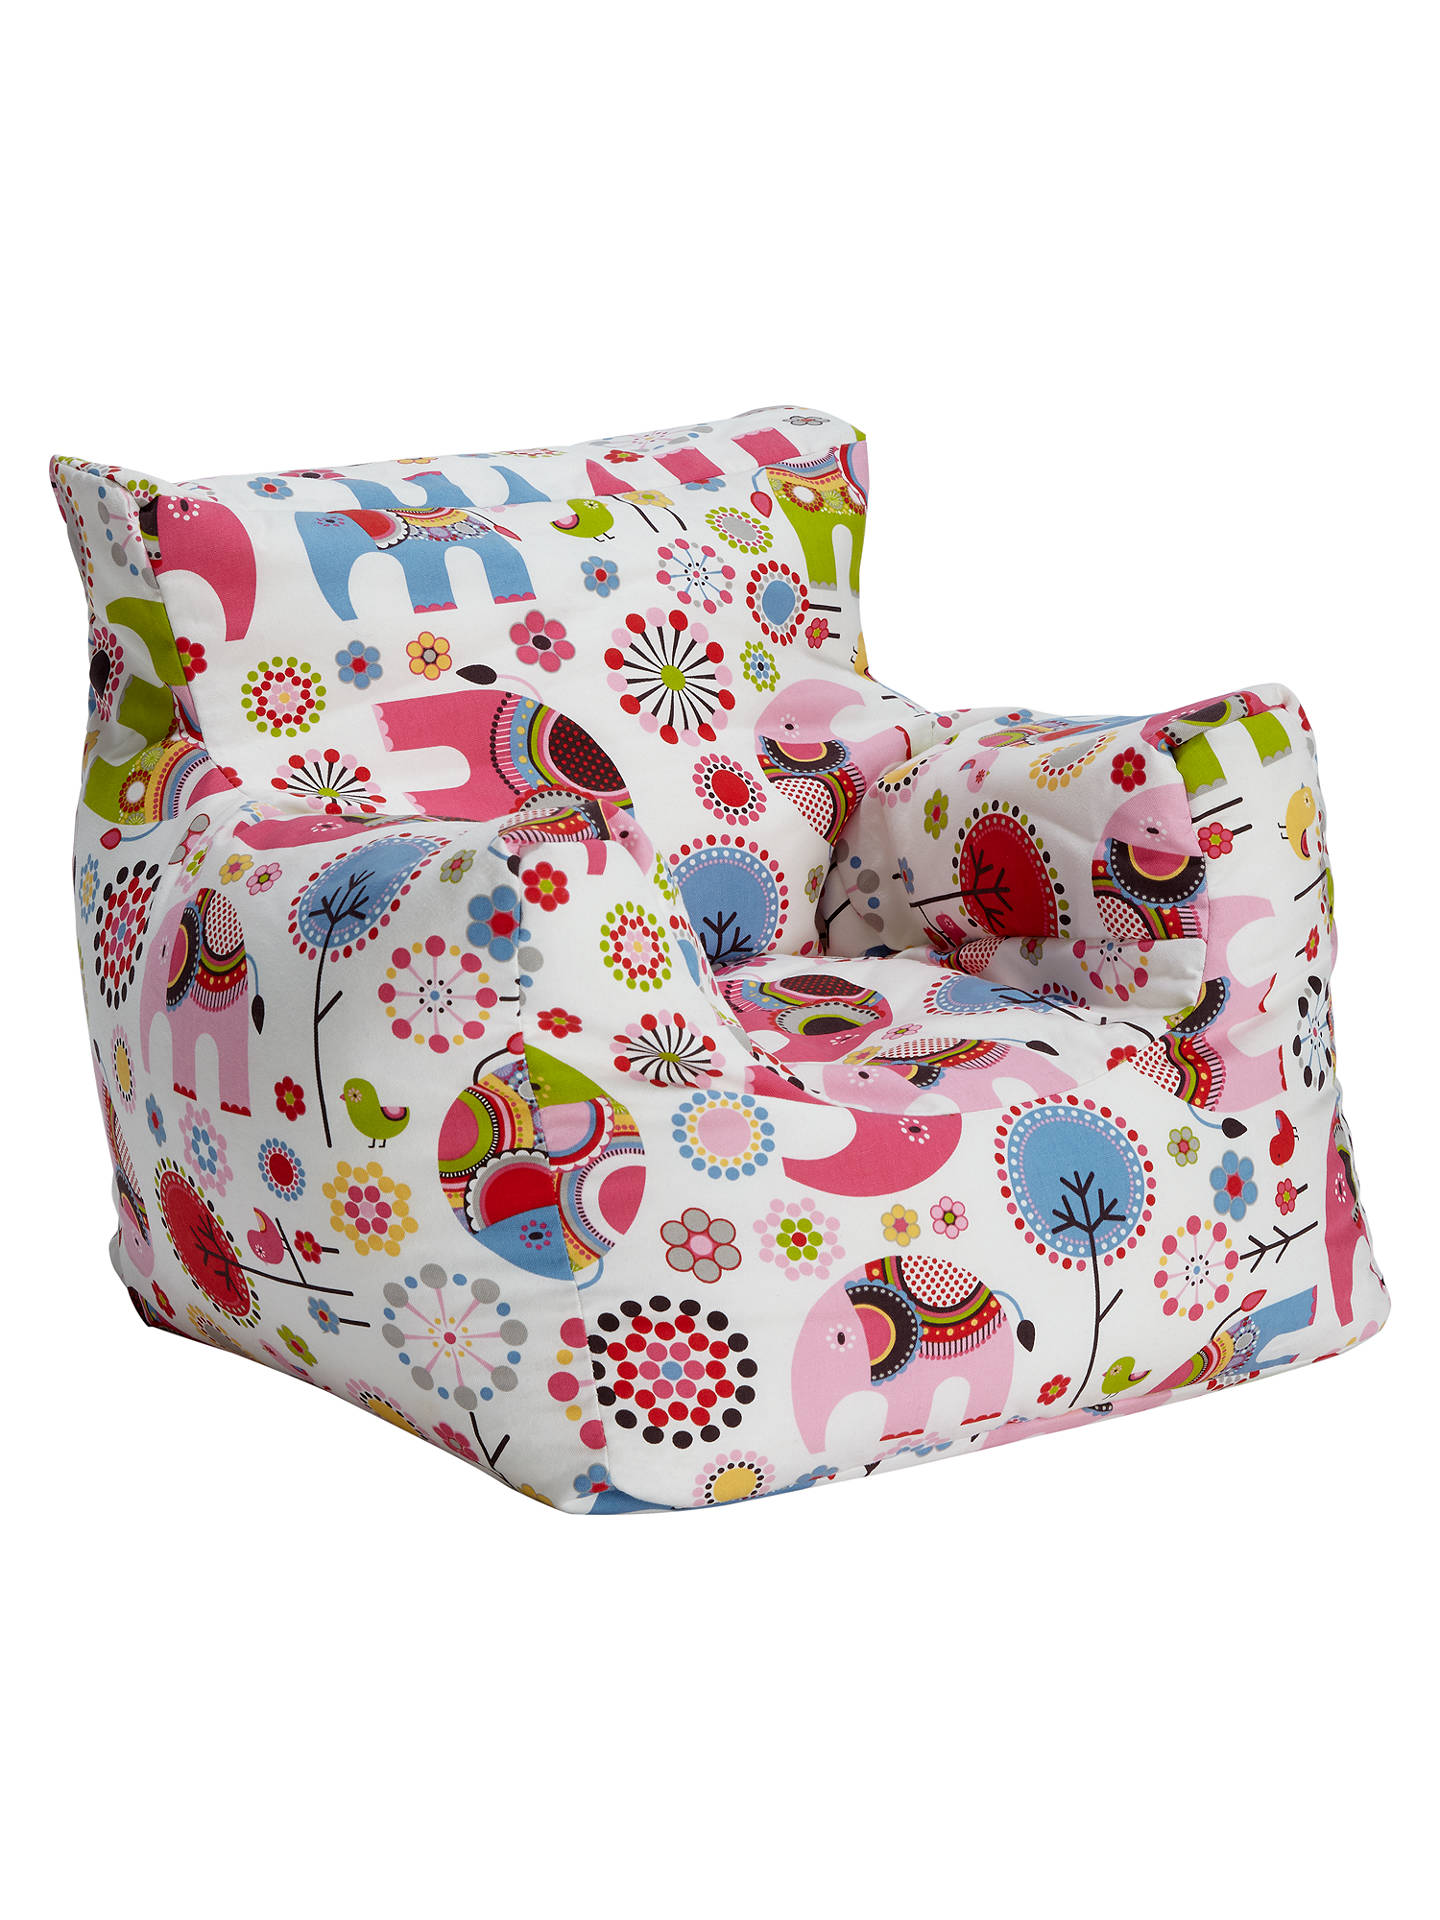 Groovy Little Home At John Lewis Abbey Elephant Bean Bag Chair At Ibusinesslaw Wood Chair Design Ideas Ibusinesslaworg